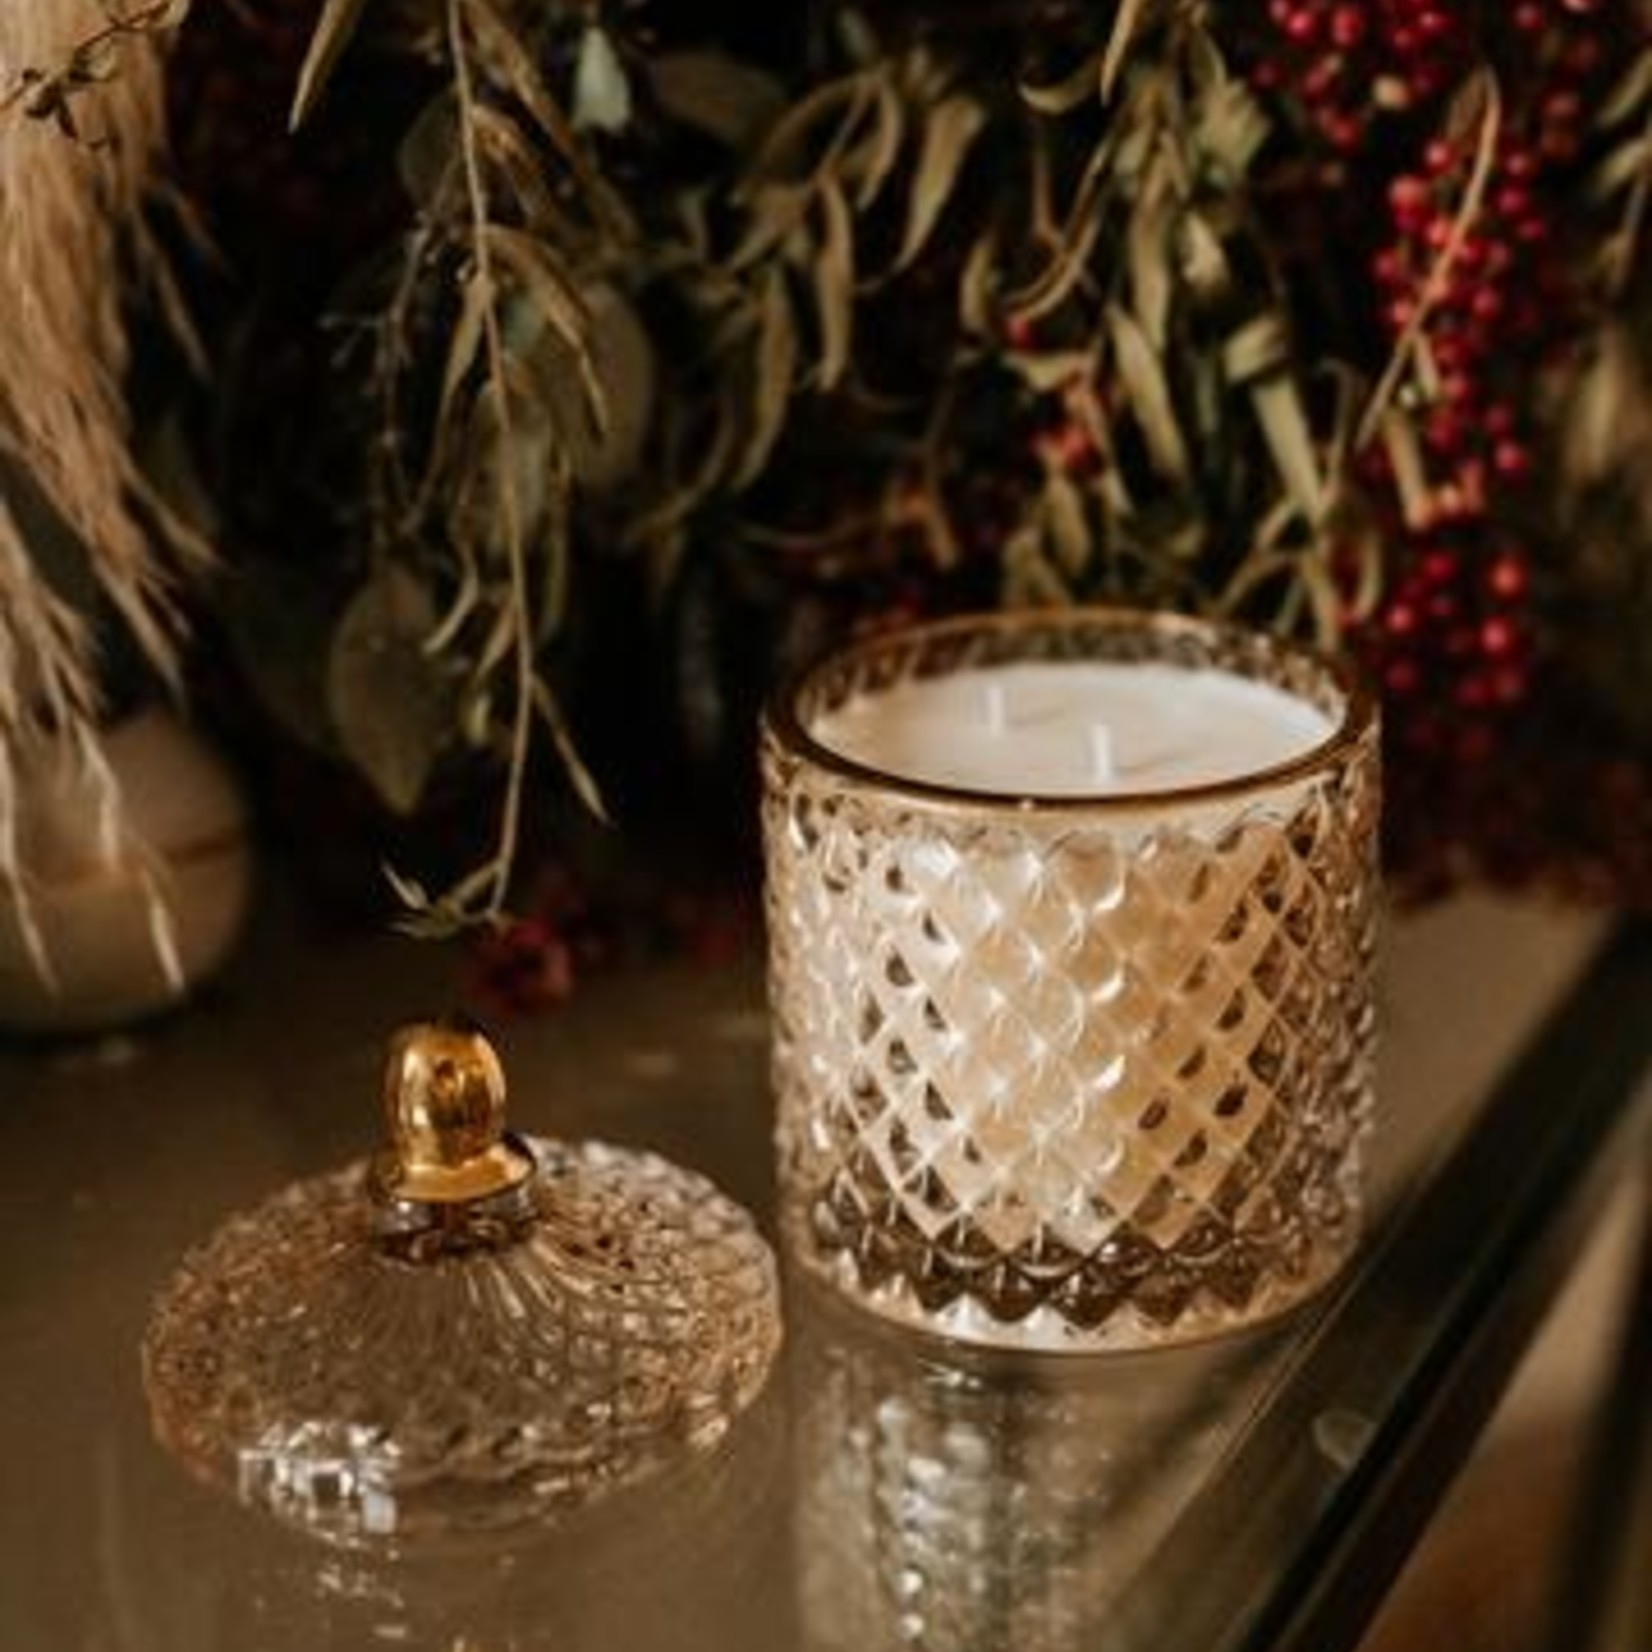 Balsam and Rose Luxe  Creme Candle- Sweet Rose